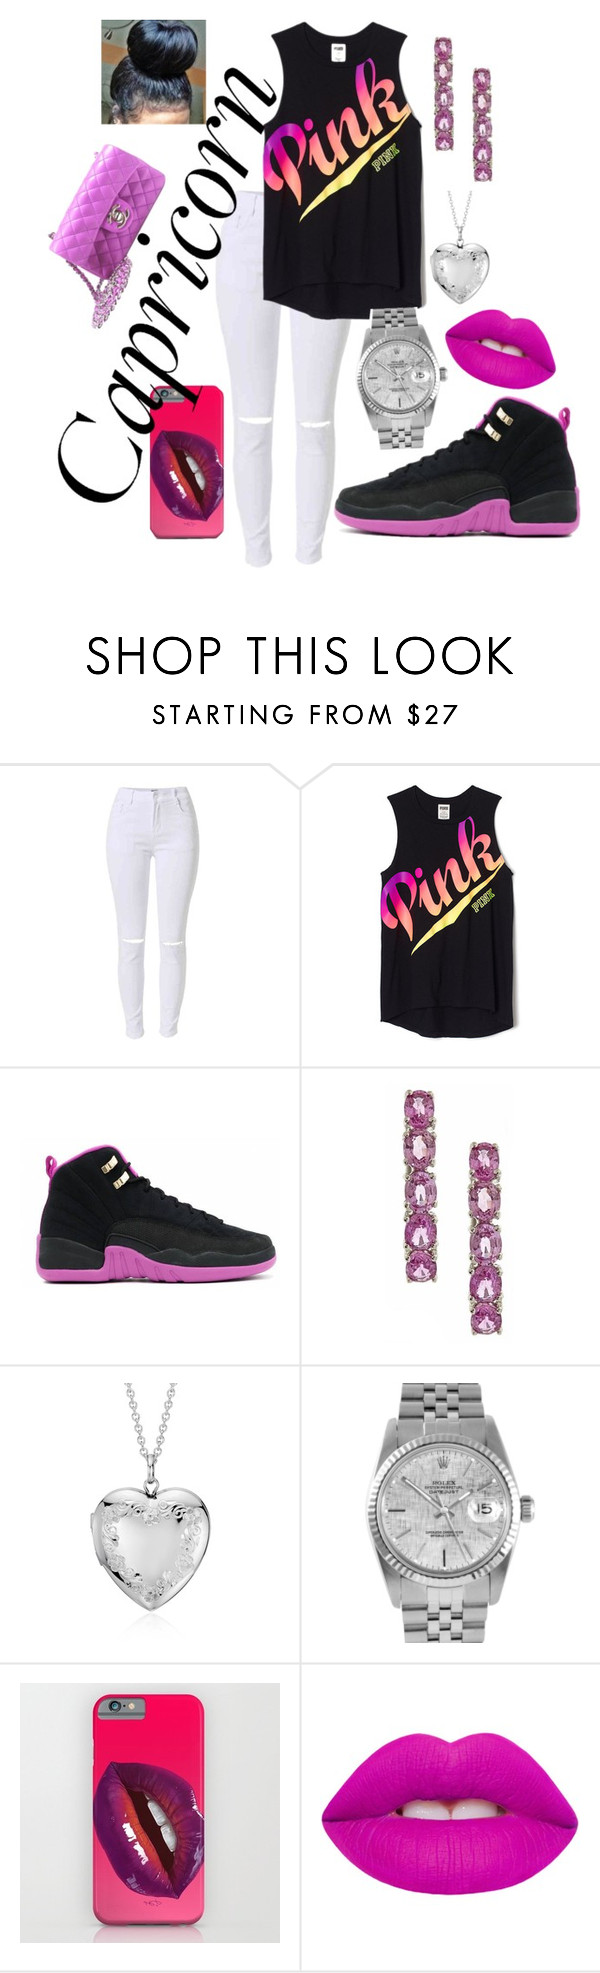 """"""""""" by laaniii ❤ liked on Polyvore featuring Anika and August, Blue Nile, Rolex, Lime Crime, Chanel, fashionhoroscope and stylehoroscope"""